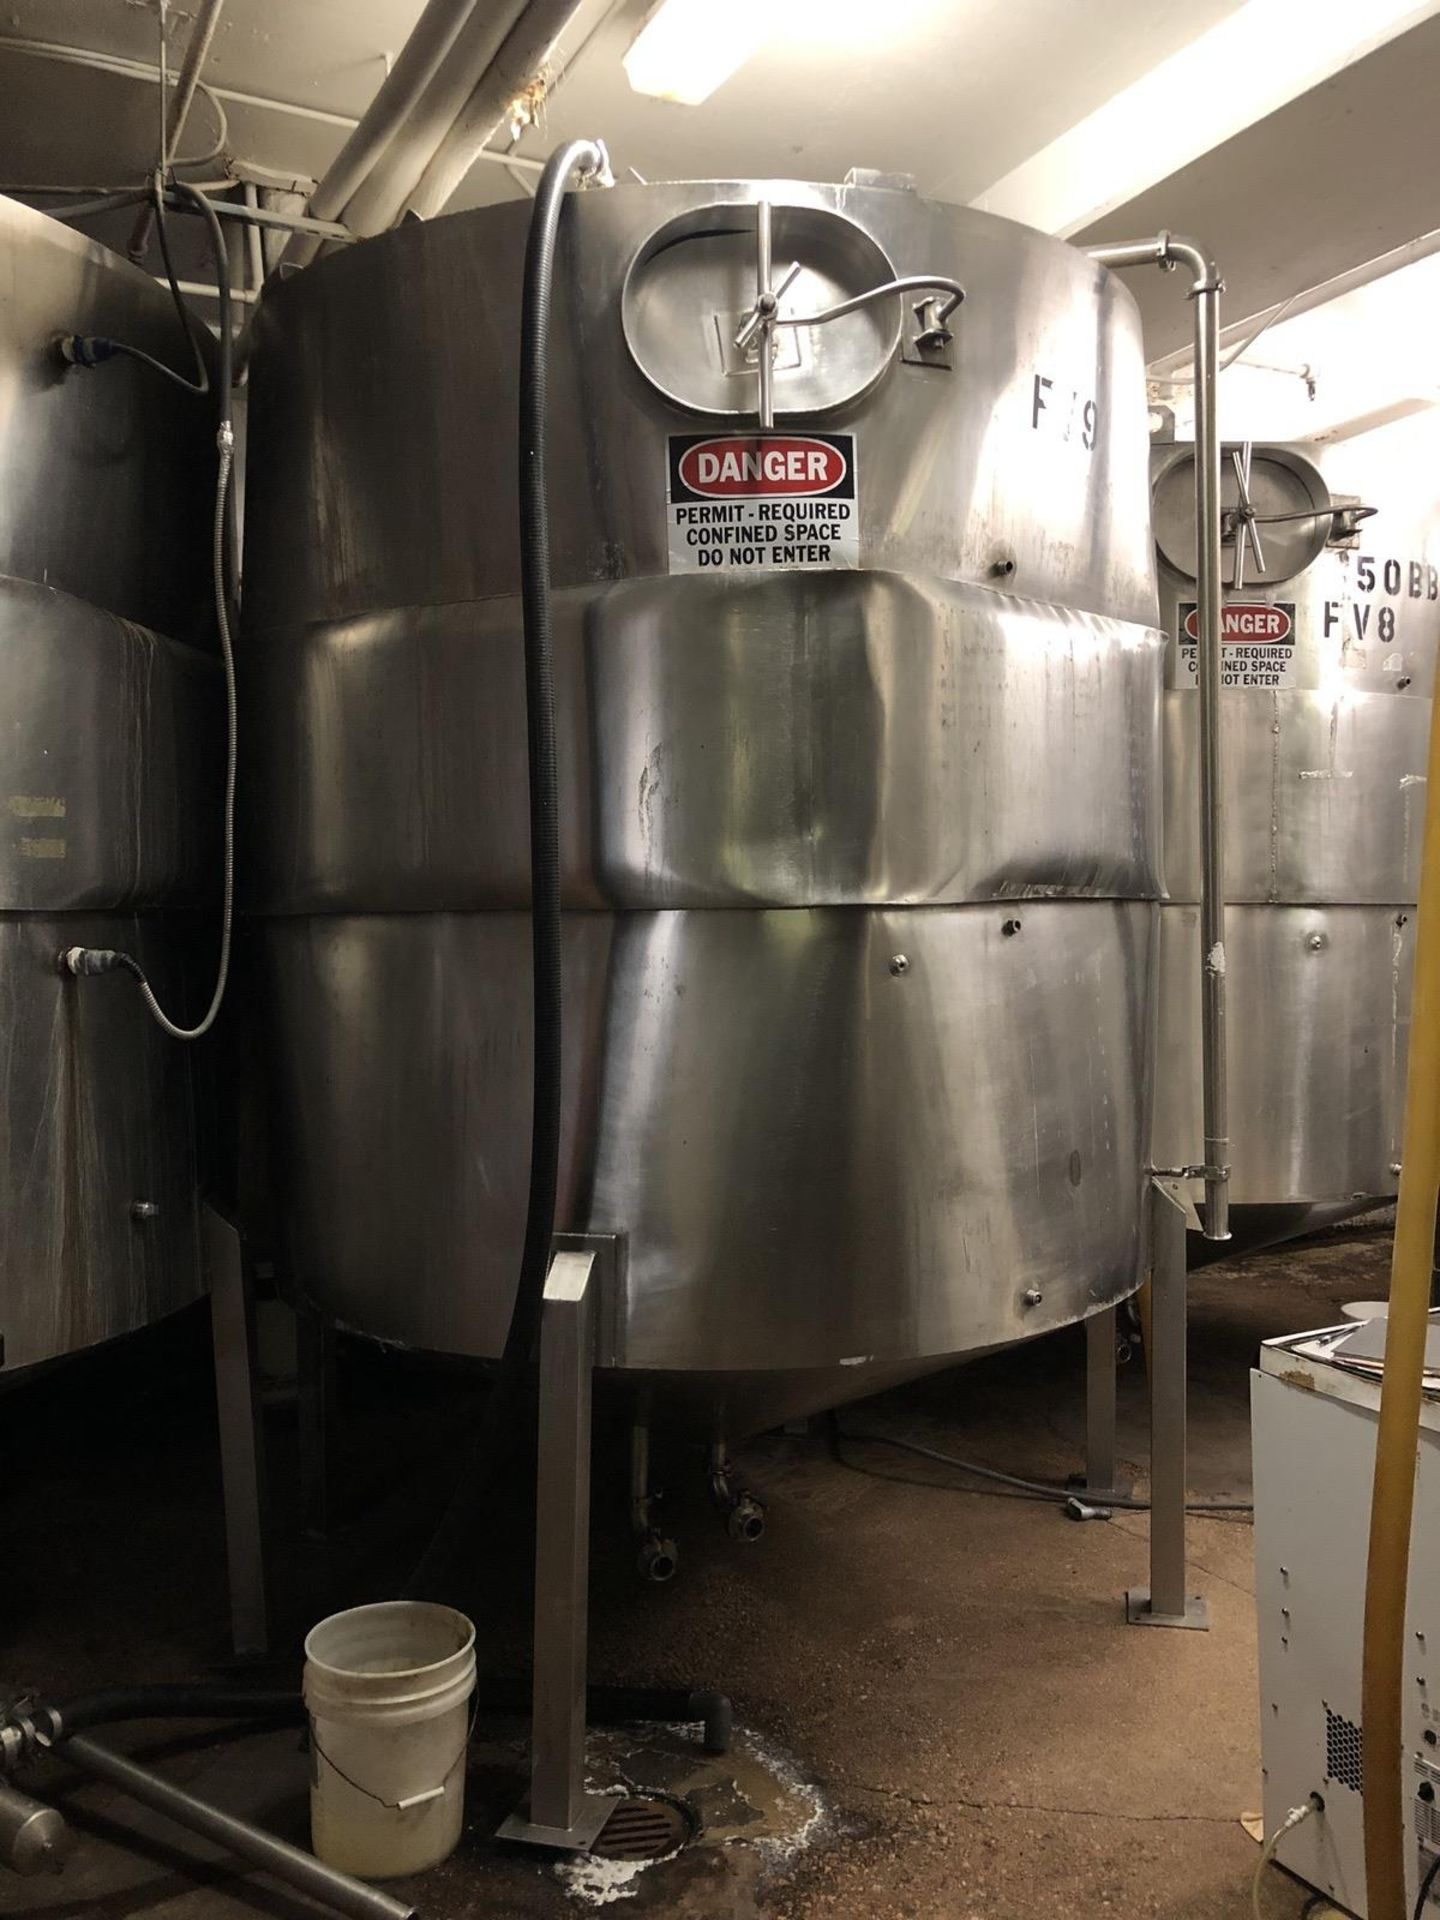 Lot 26 - 50 BBL Stainless Steel Tank, Damaged Jacket, Approx Dims: 7ft OD x 125in OAH | Rig Fee: $500